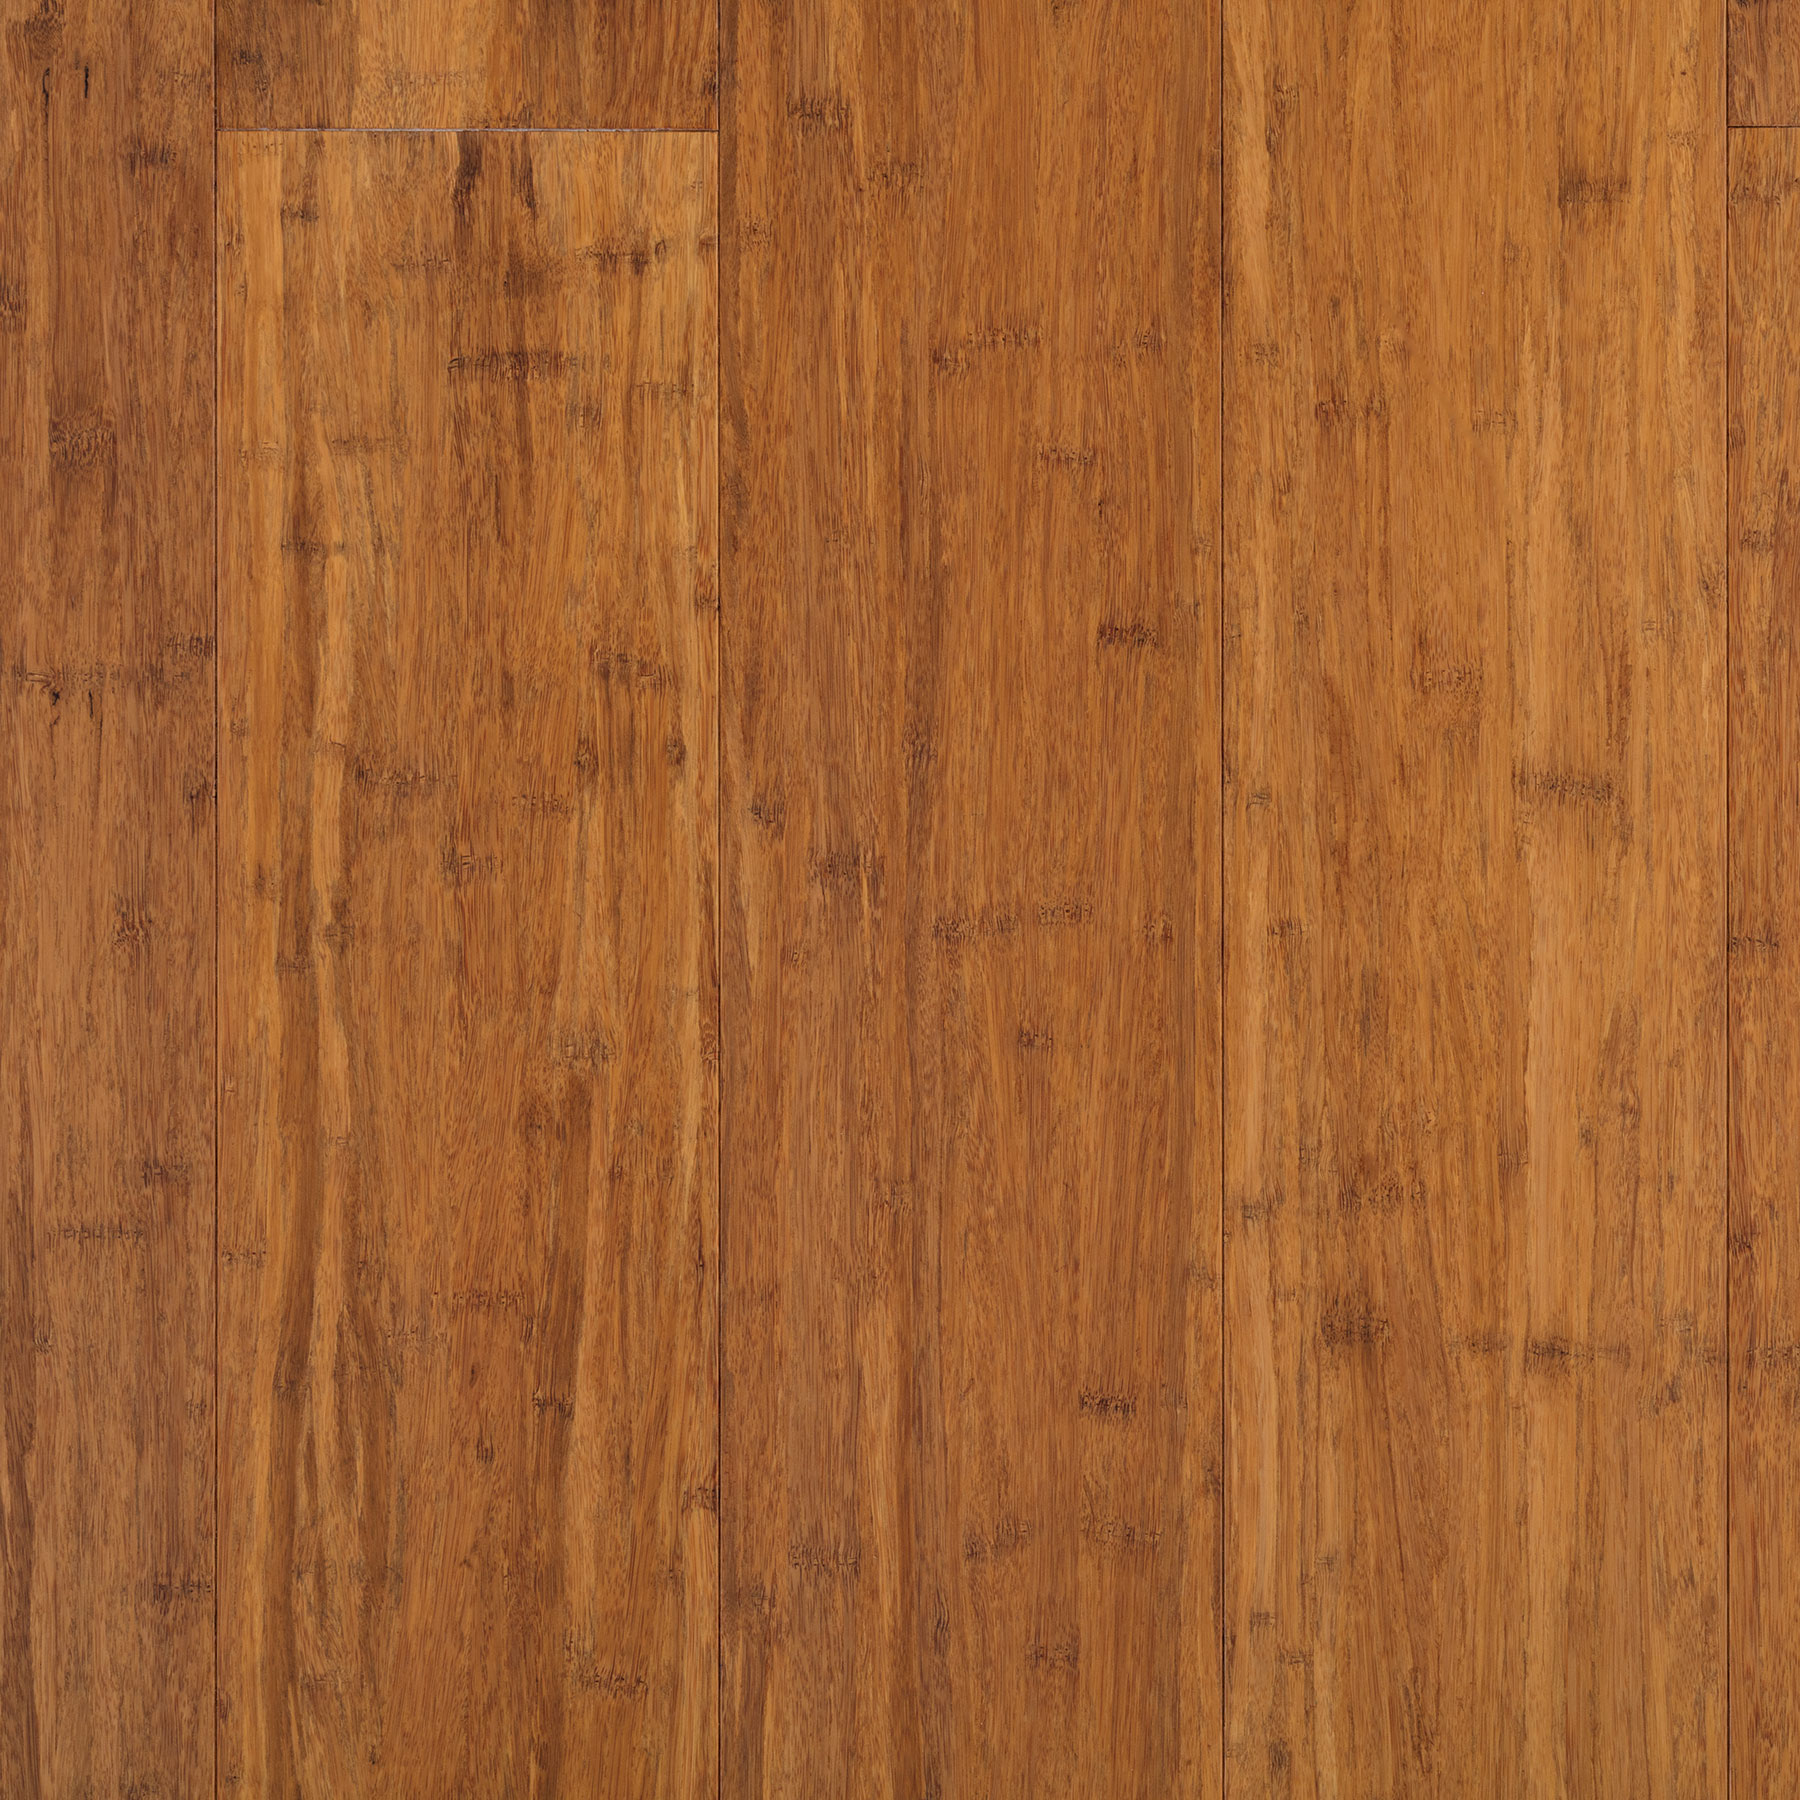 strand flooring bamboo woven lg collection carbonized by ecofusion rs shop floor solid products all